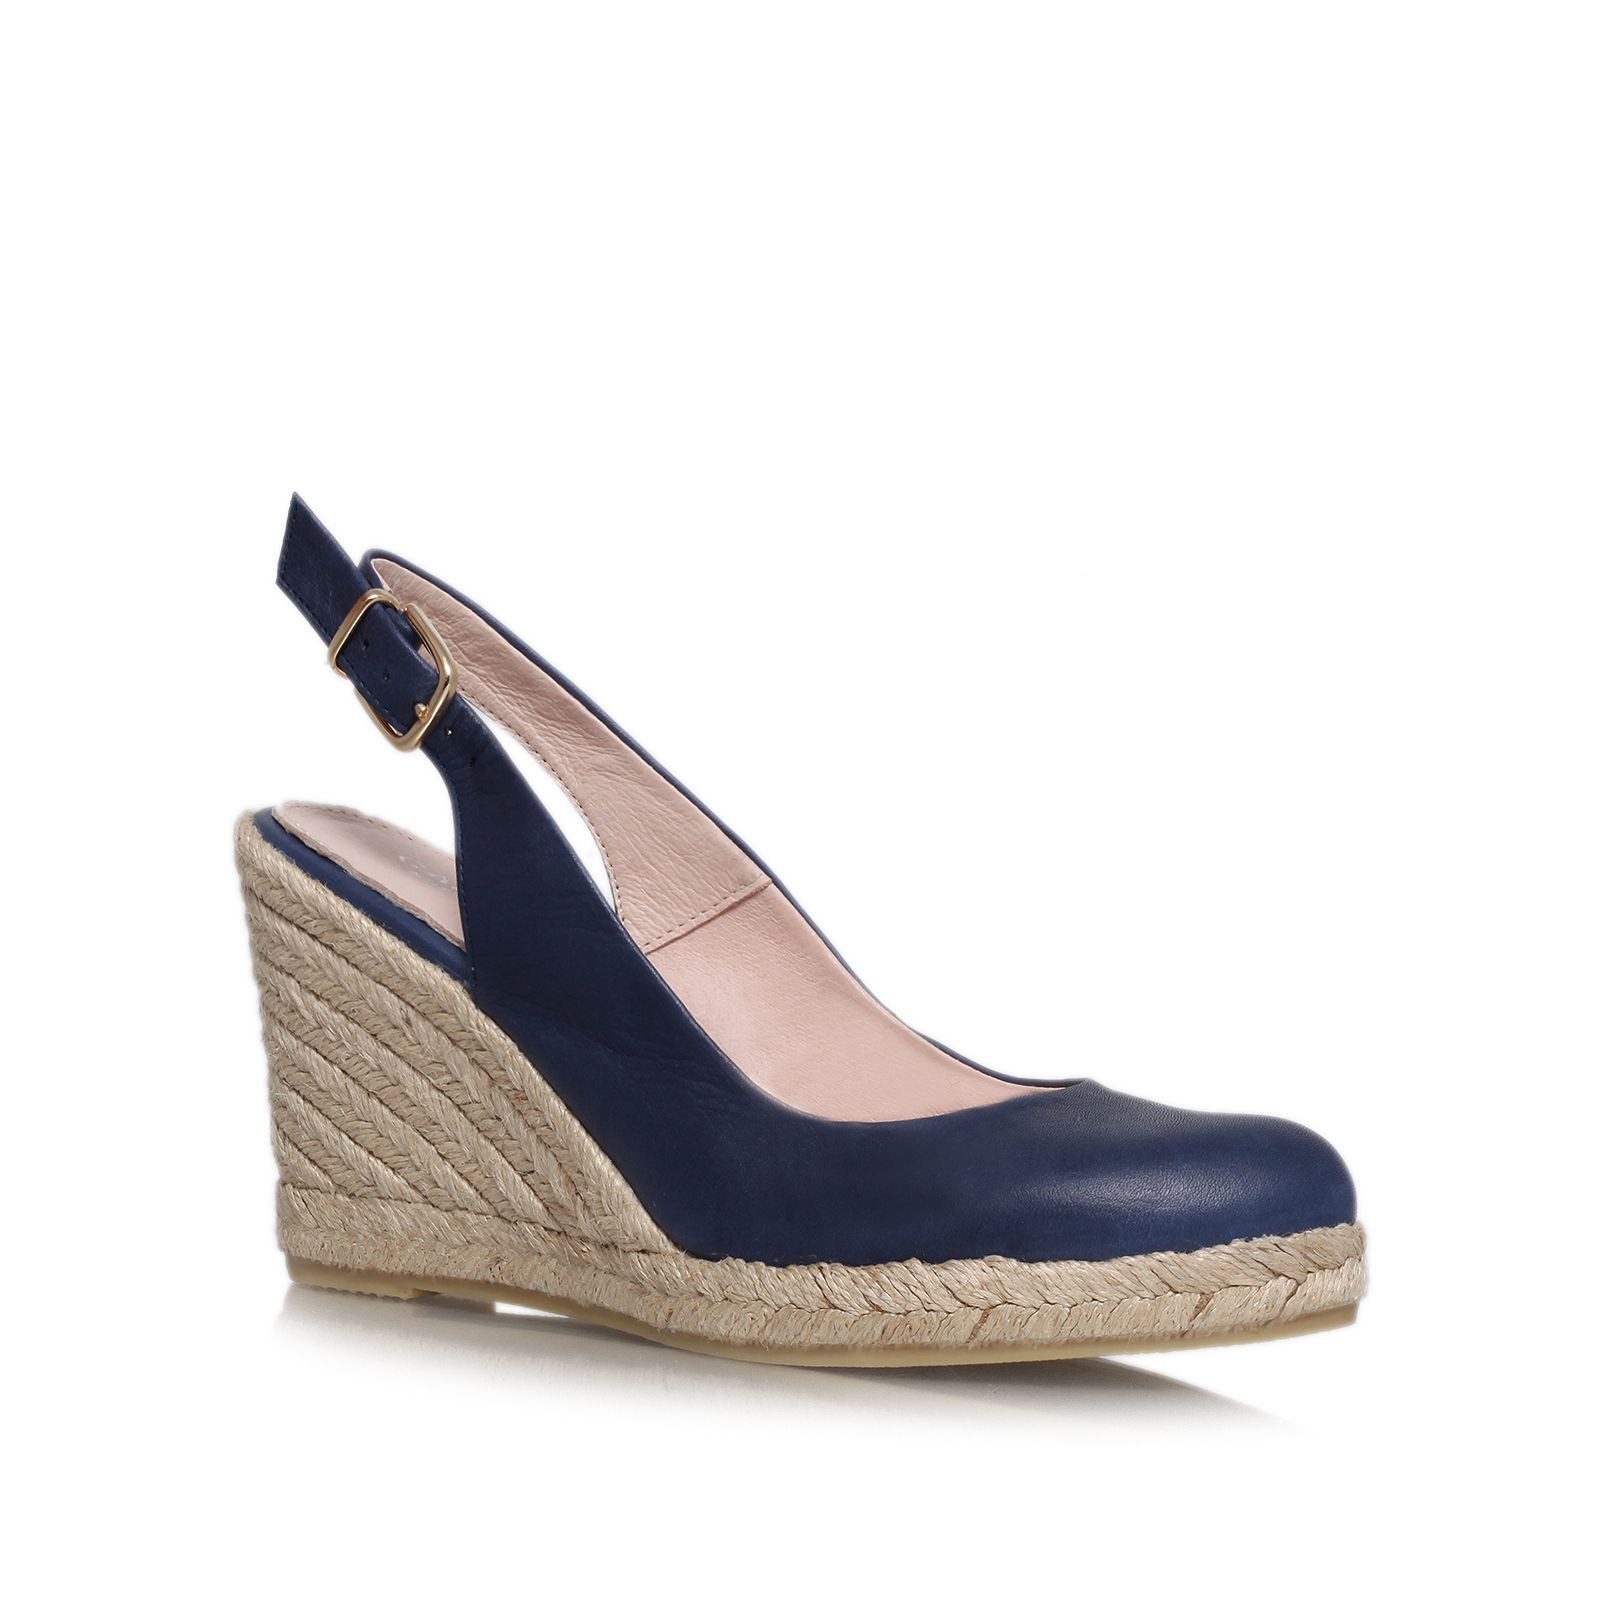 carvela kurt geiger high heel wedge sandals in blue